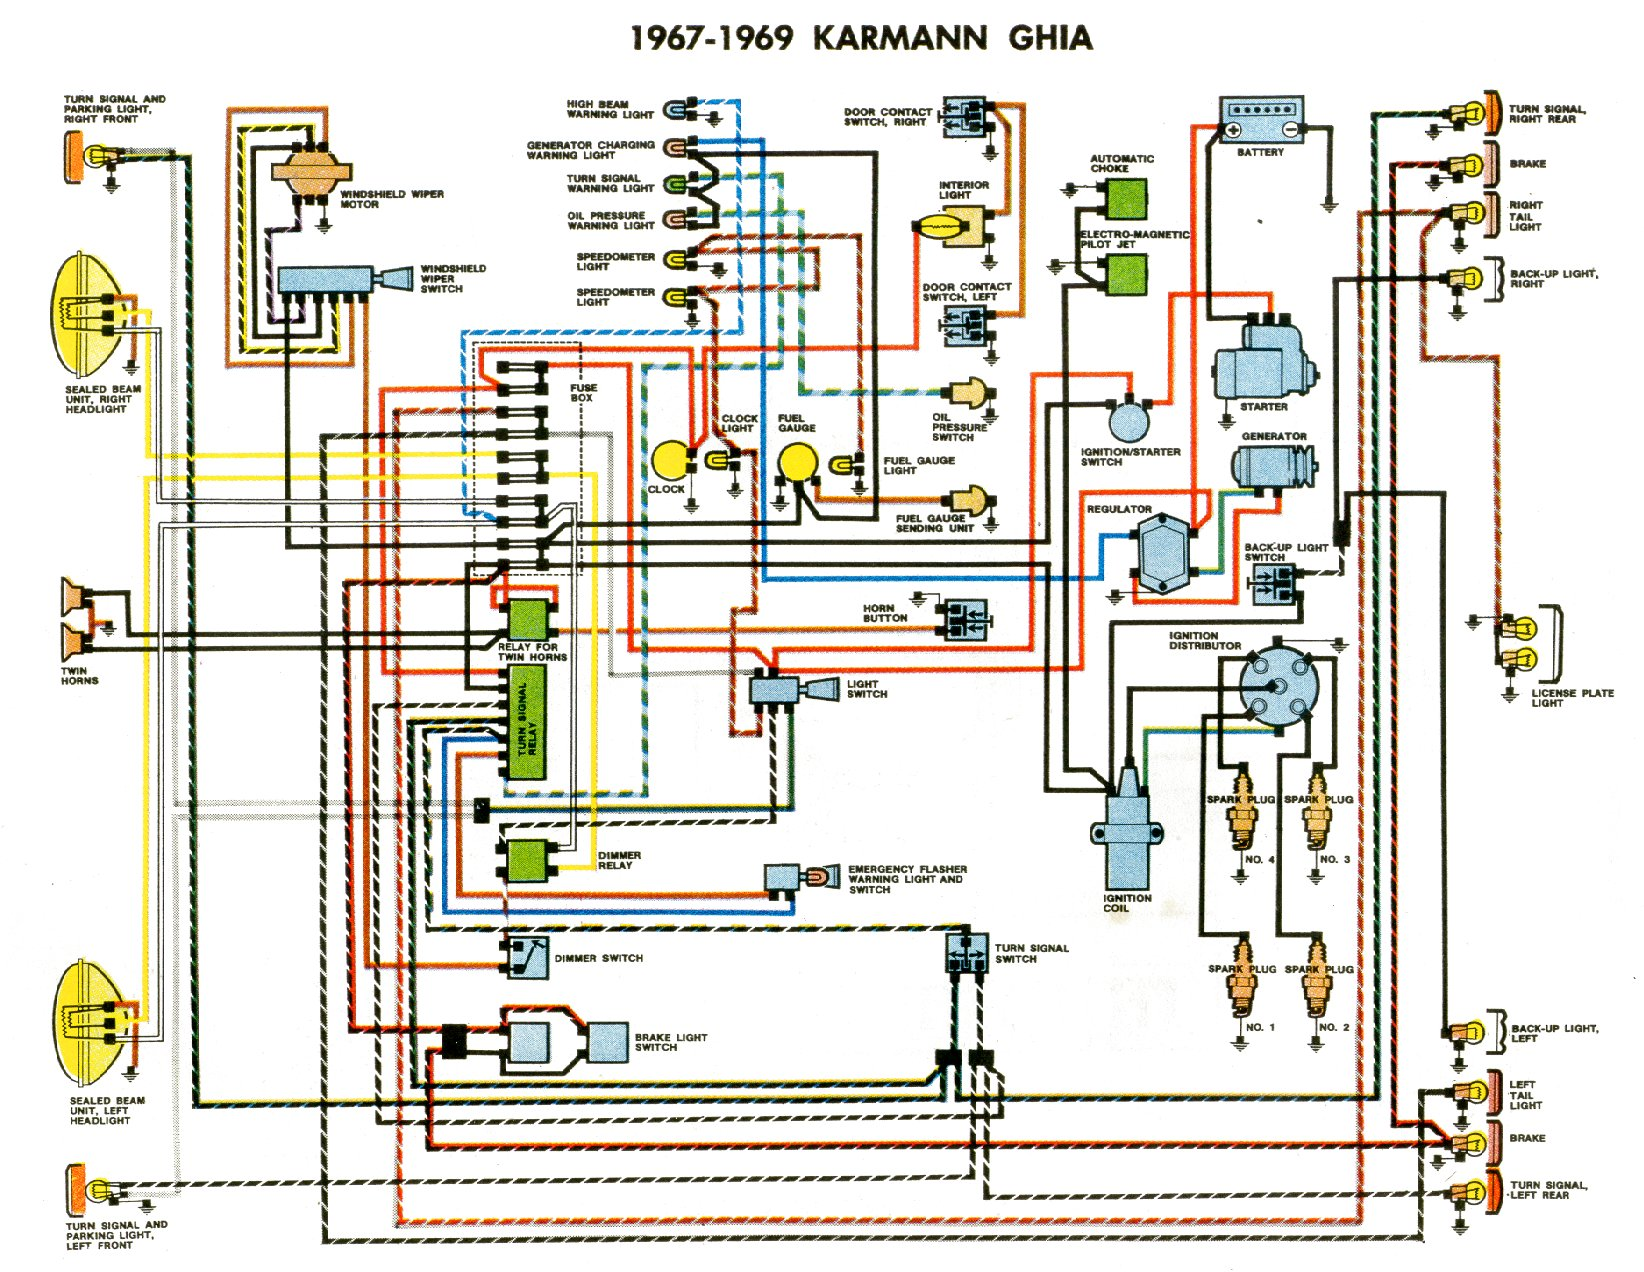 Air Cooled Vw Alternator Wiring Diagram in addition Kit Dune Buggy Wiring Diagram together with Vw Engines For Dune Buggy additionally Simple Wiring Diagram Car Wheels as well Razor Electric Buggy. on sand rail wiring diagram